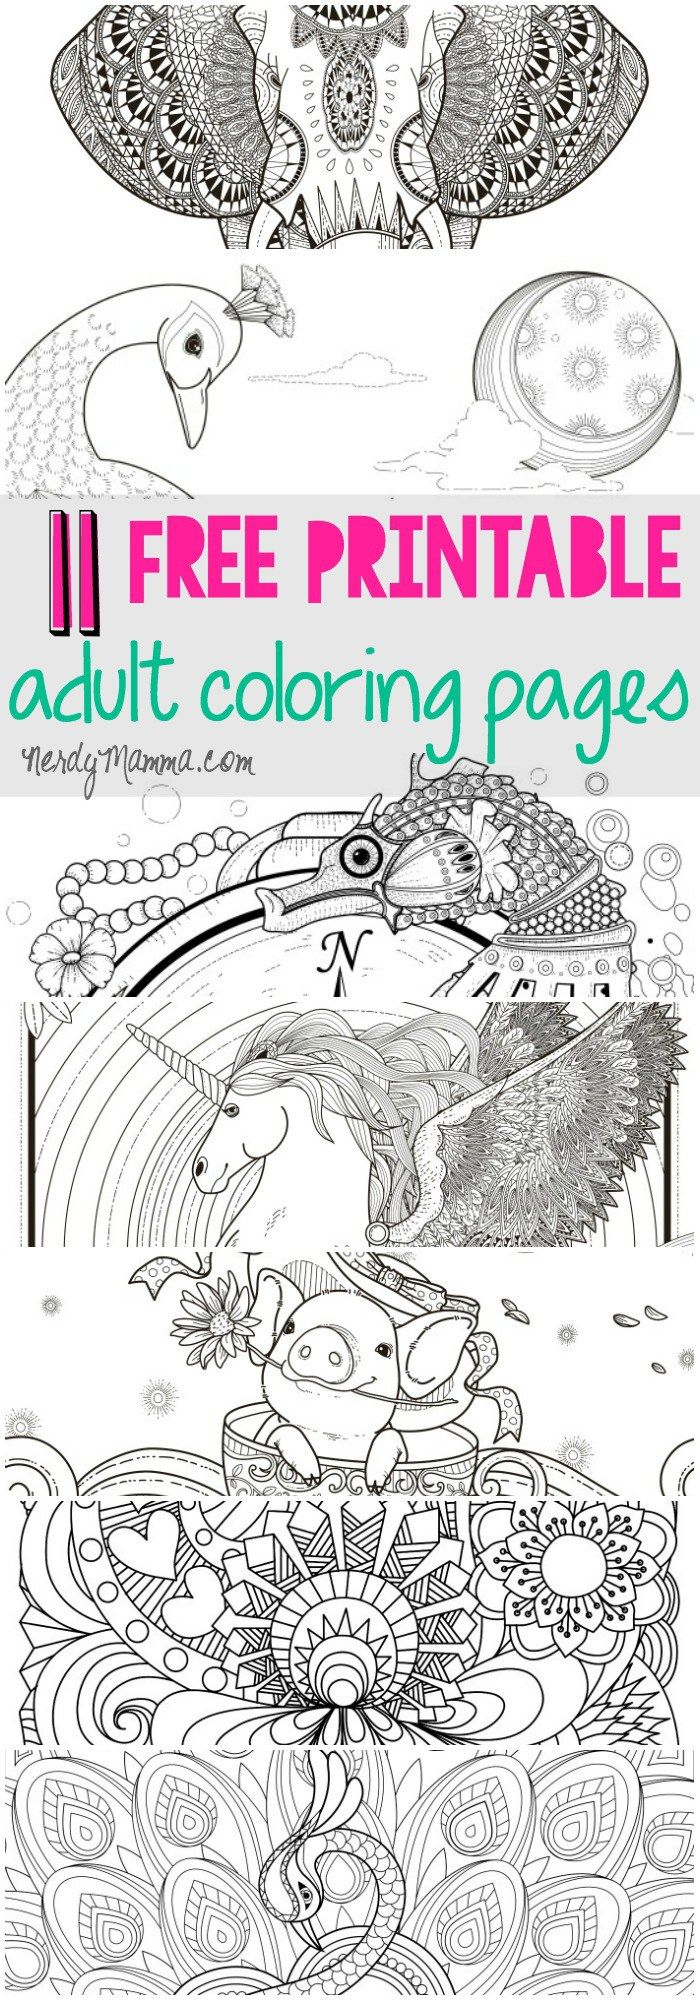 Coloring pages starfish intermediate - 11 Free Printable Adult Coloring Pages